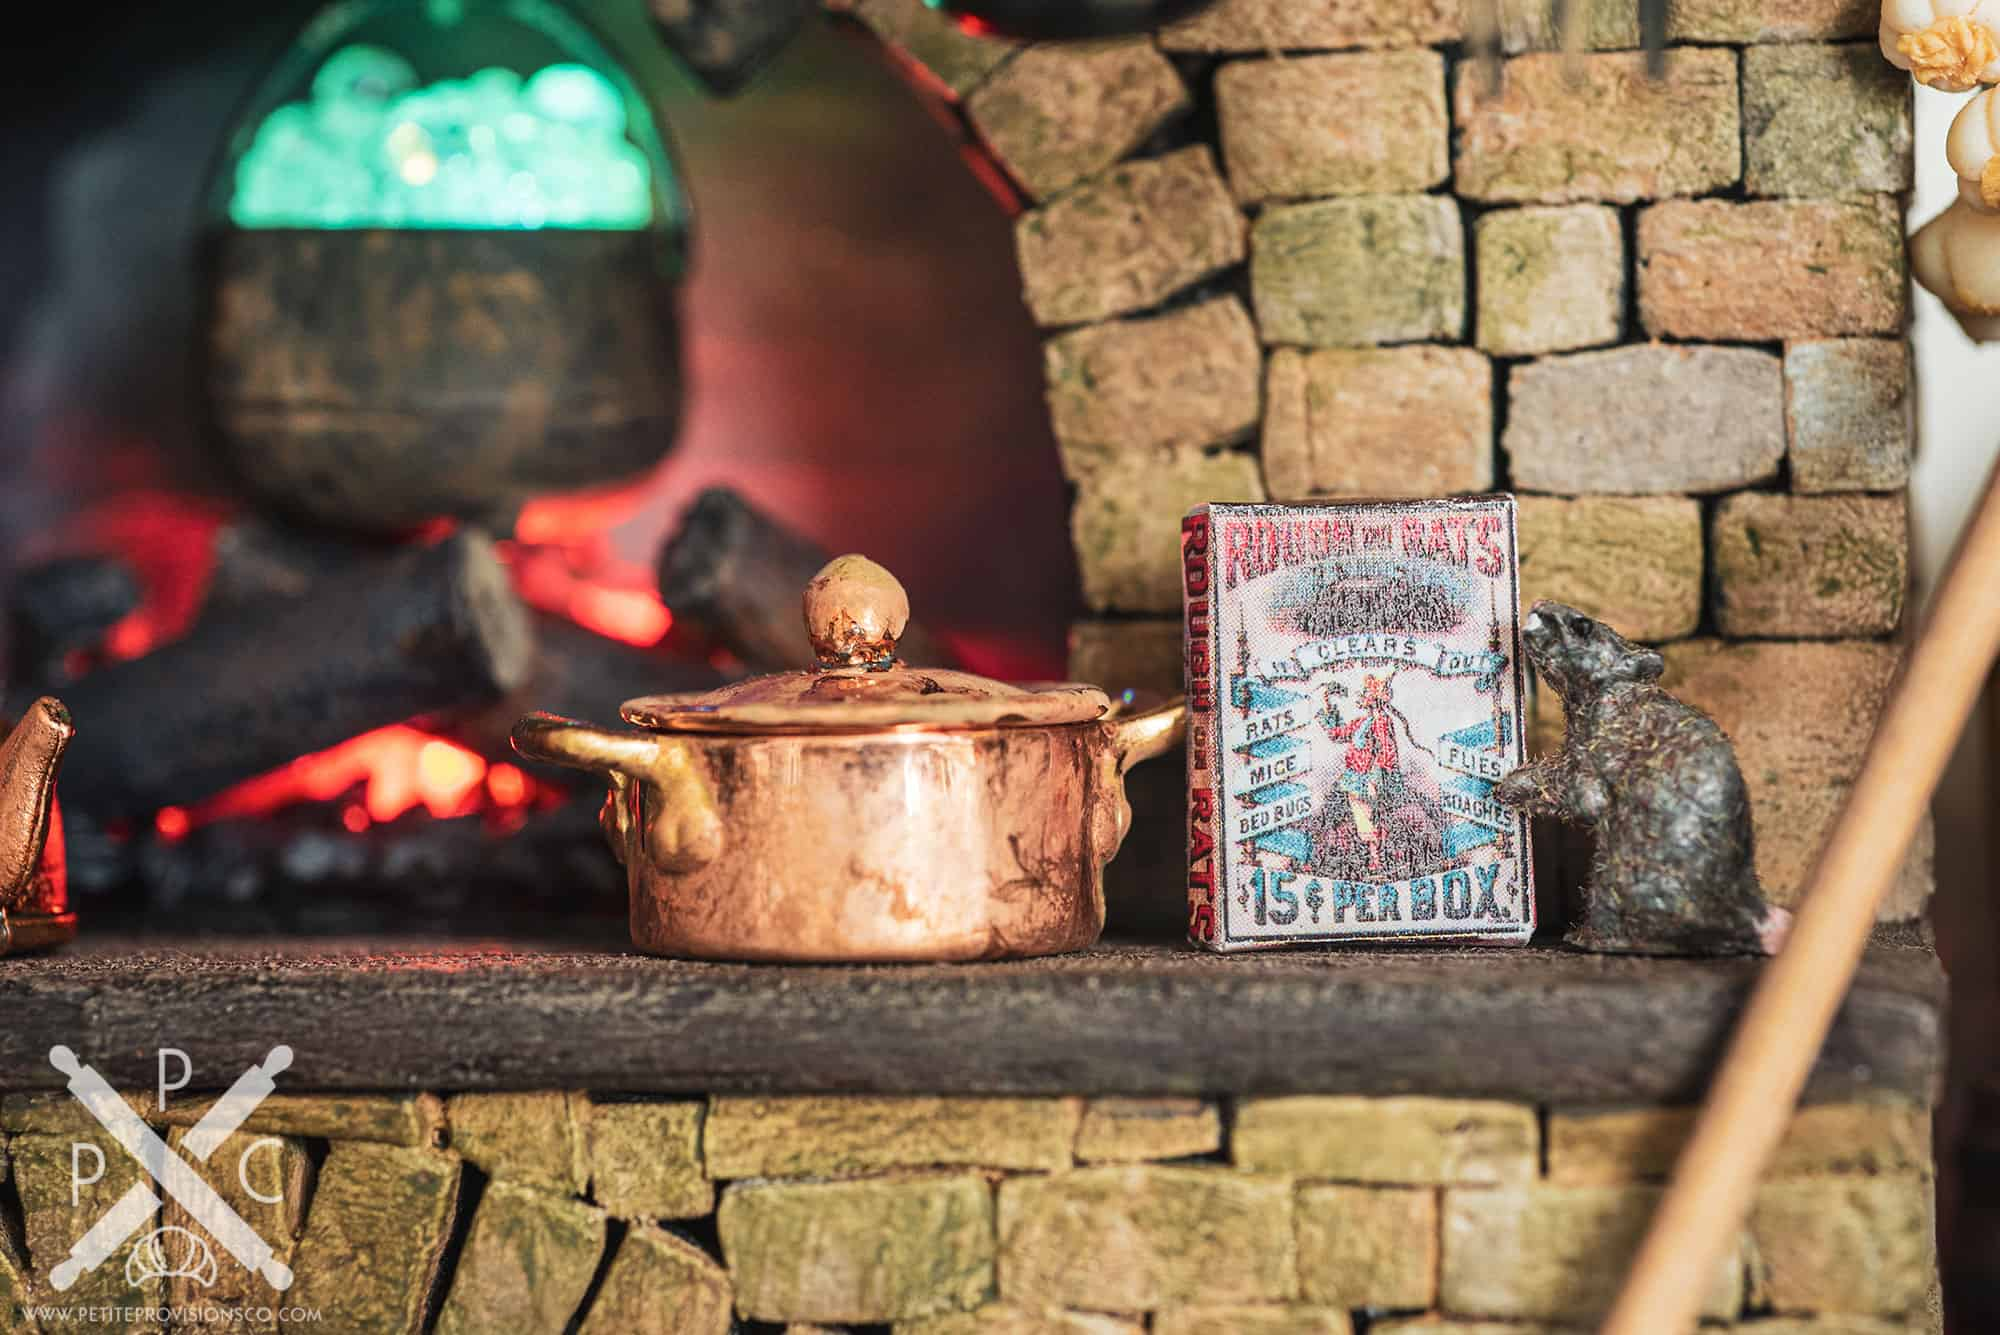 Rat and Rat Poison in Witch's Kitchen Themed Roombox - Halloween at the Hag's Hearth - HBSMiniatures Halloween Challenge 2020